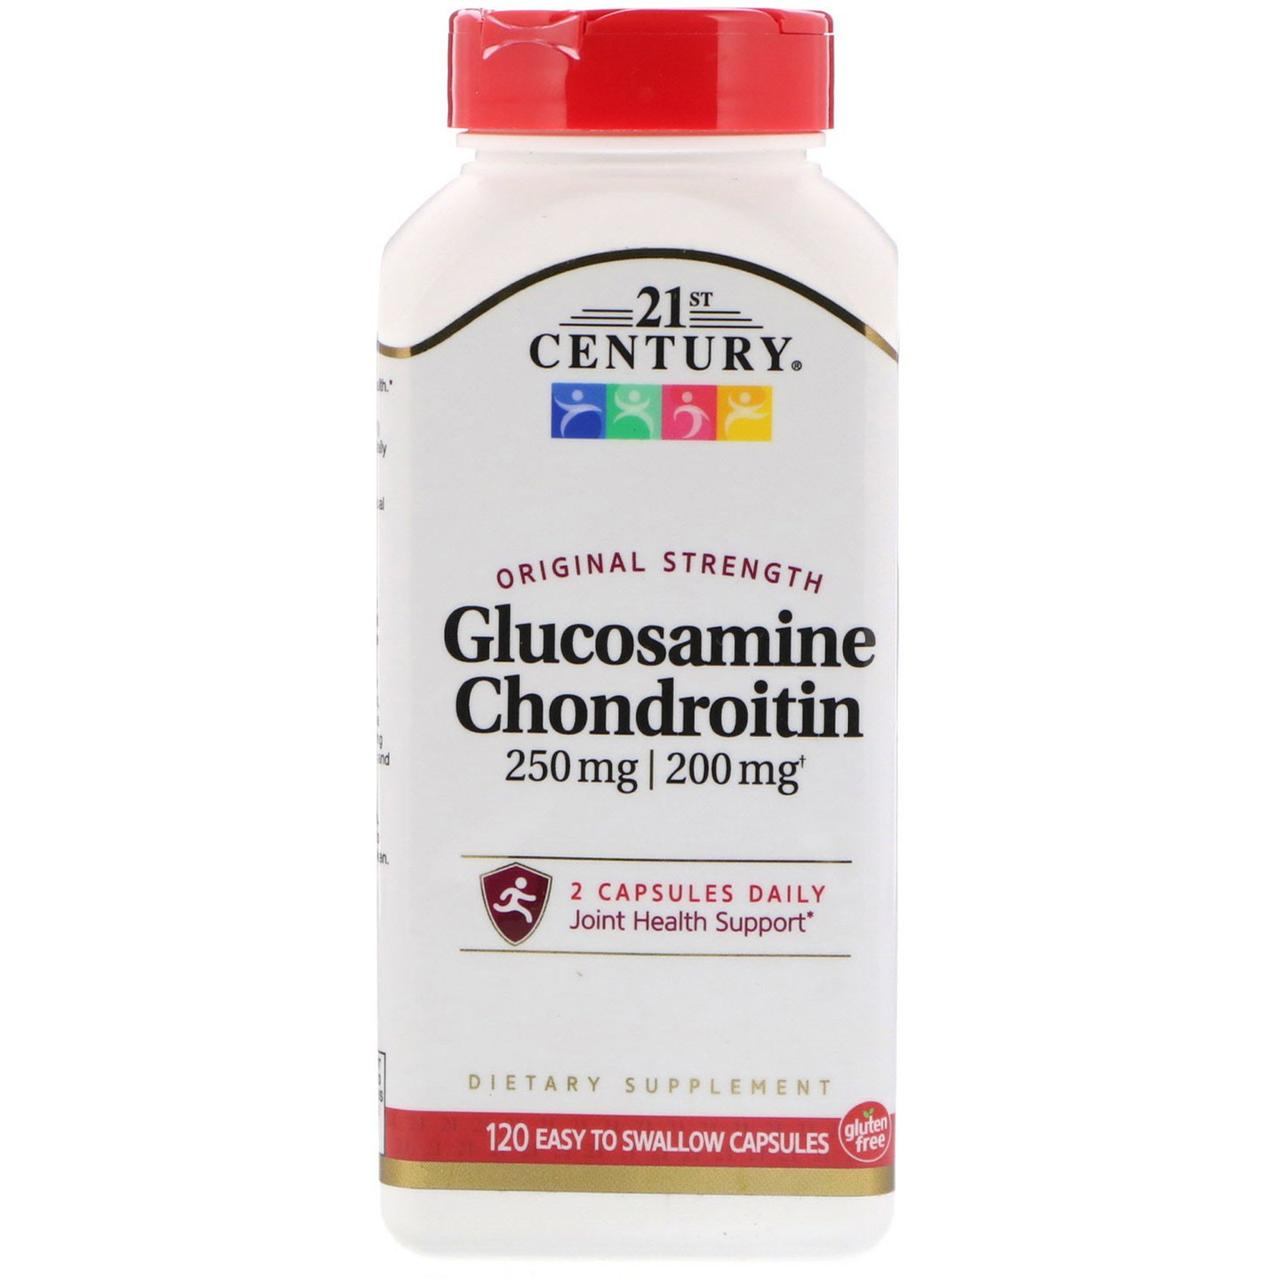 21st Century, Glucosamine 250 mg Chondroitin 200 mg, Original Strength, 120 Easy to Swallow Capsules